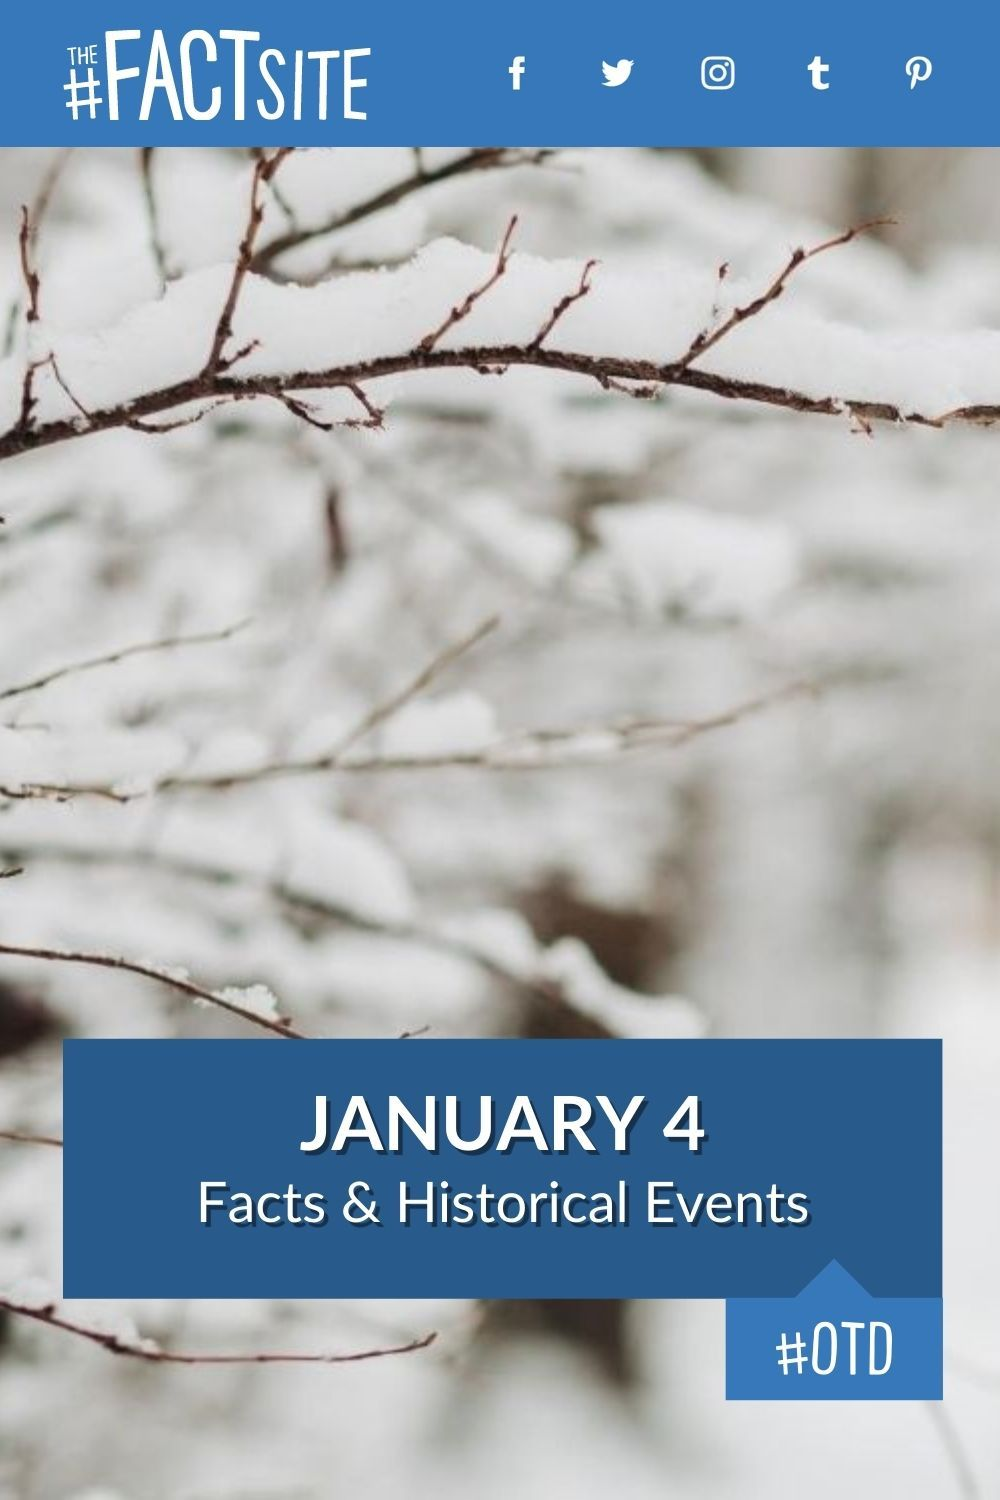 Facts & Historic Events That Happened on January 4